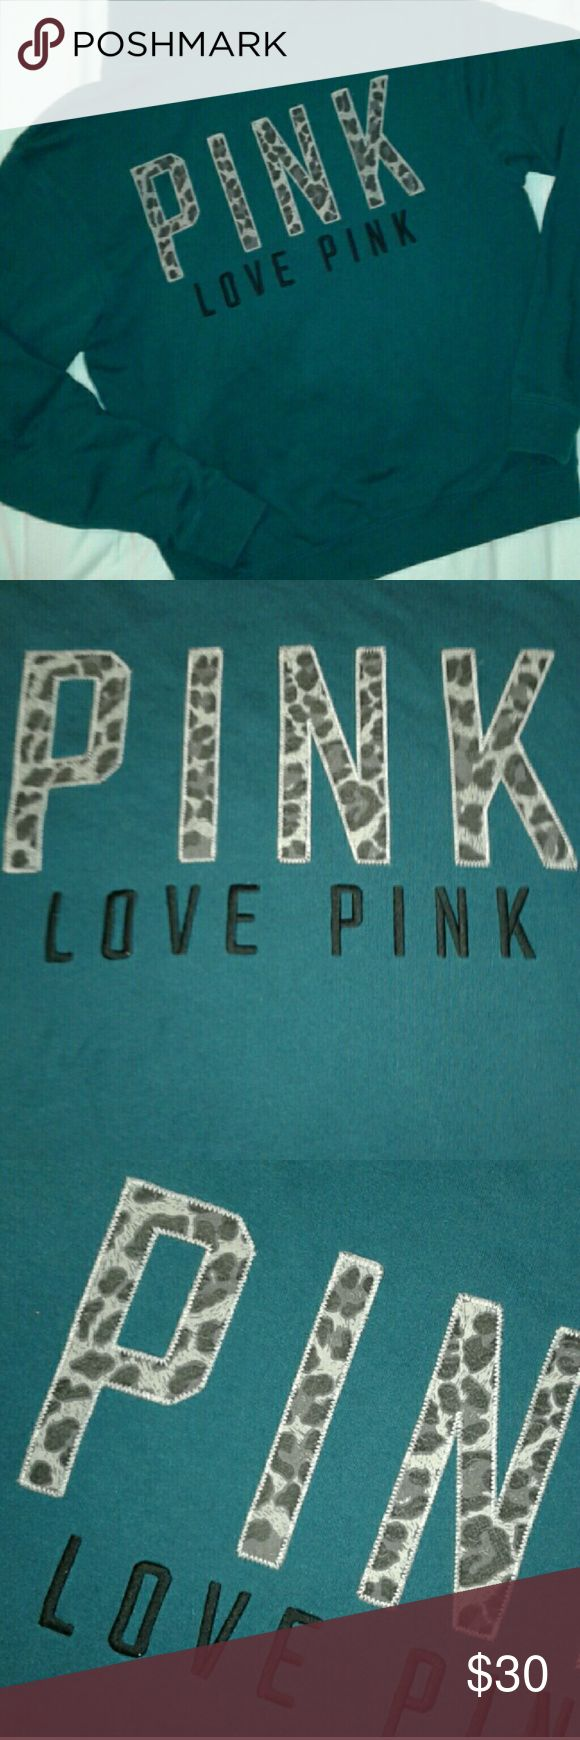 Victoria's Secret Pink VS Pink quarter zip pullover. Great preloved condition free of any flaws, defects or excessive signs of wear/use. Front has Pink puppy logo embroidered at left chest. Back has 'LOVE PINK' embroidered underneath 'PINK' logo in cheetah patterned letters. PINK Victoria's Secret Tops Sweatshirts & Hoodies